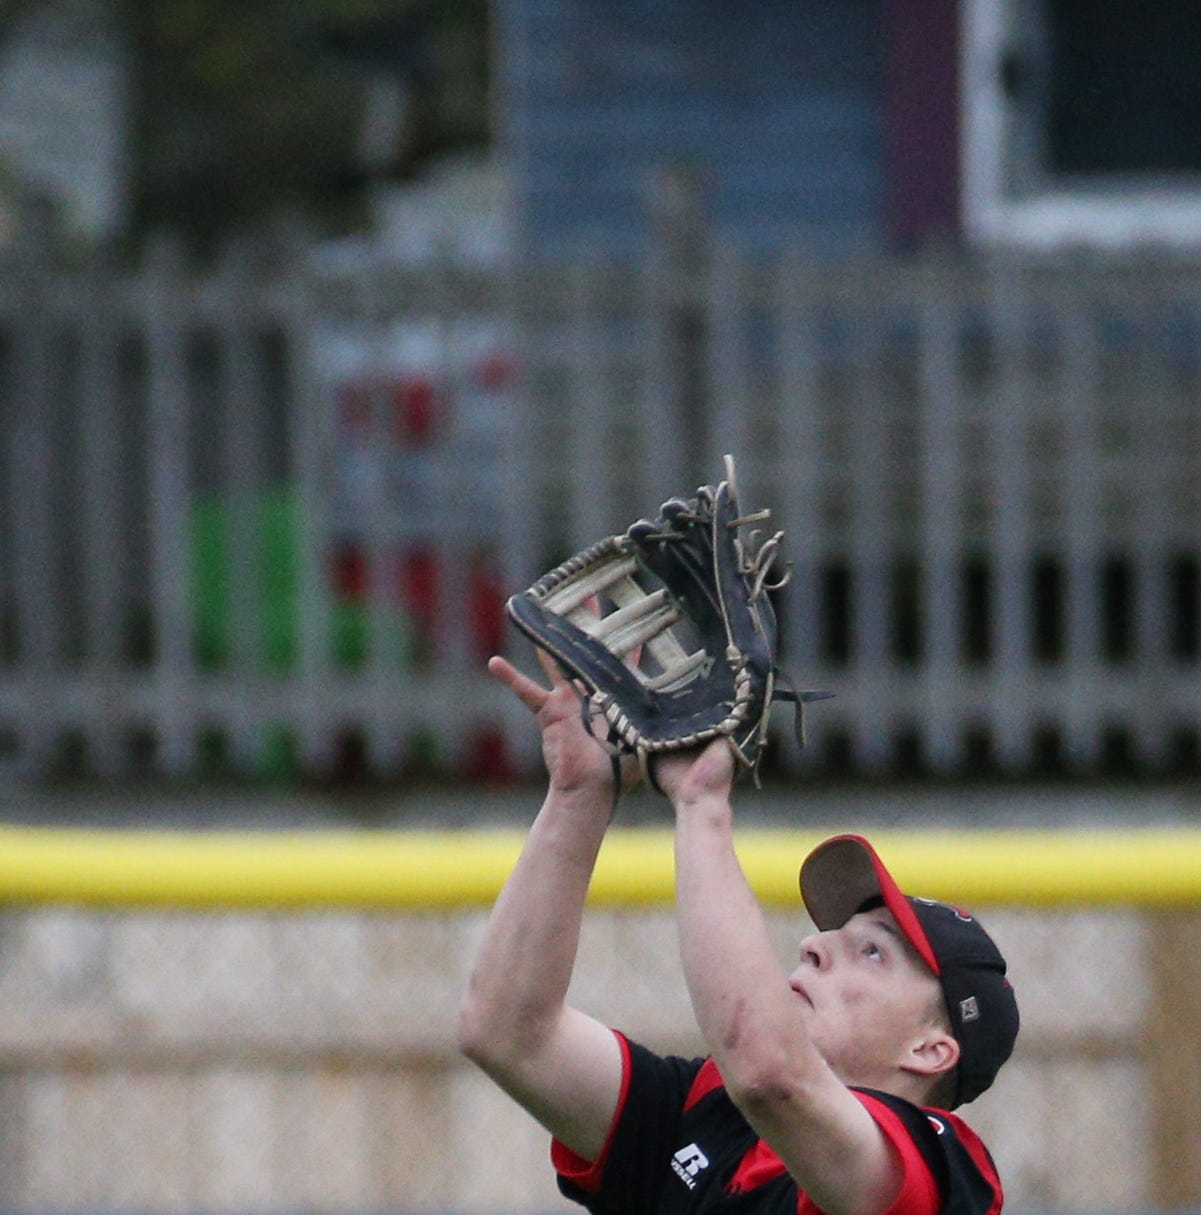 High school scores for Thursday, May 9: Find out how your favorite Section V team fared